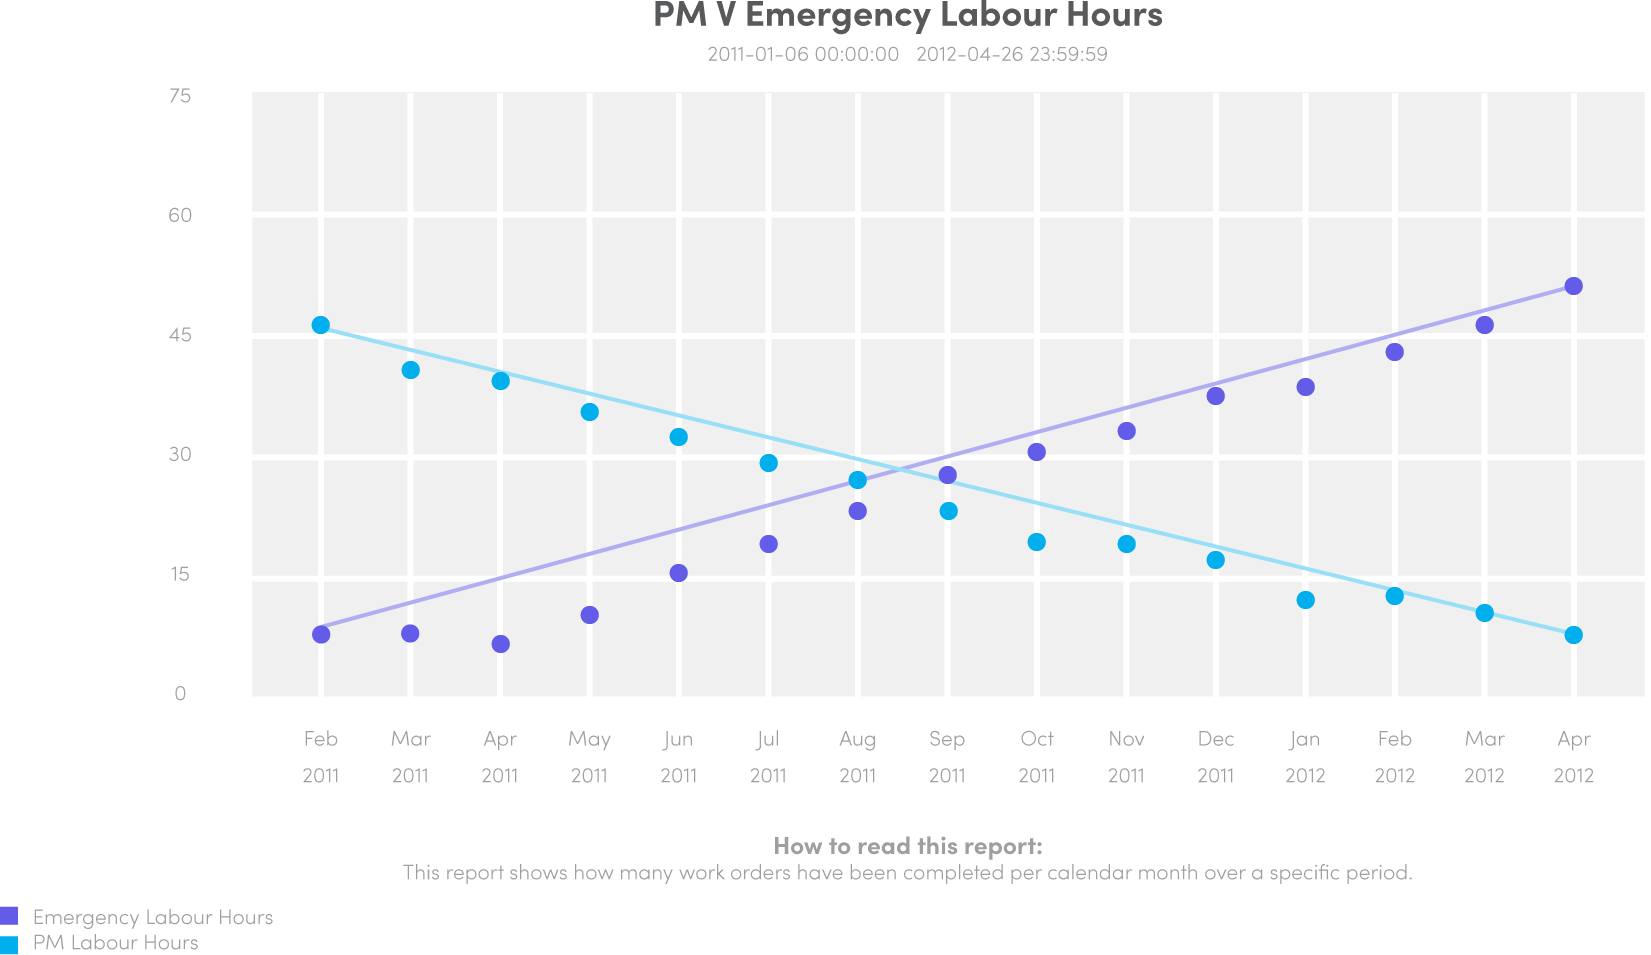 pm-vs-emergency-labour-hours